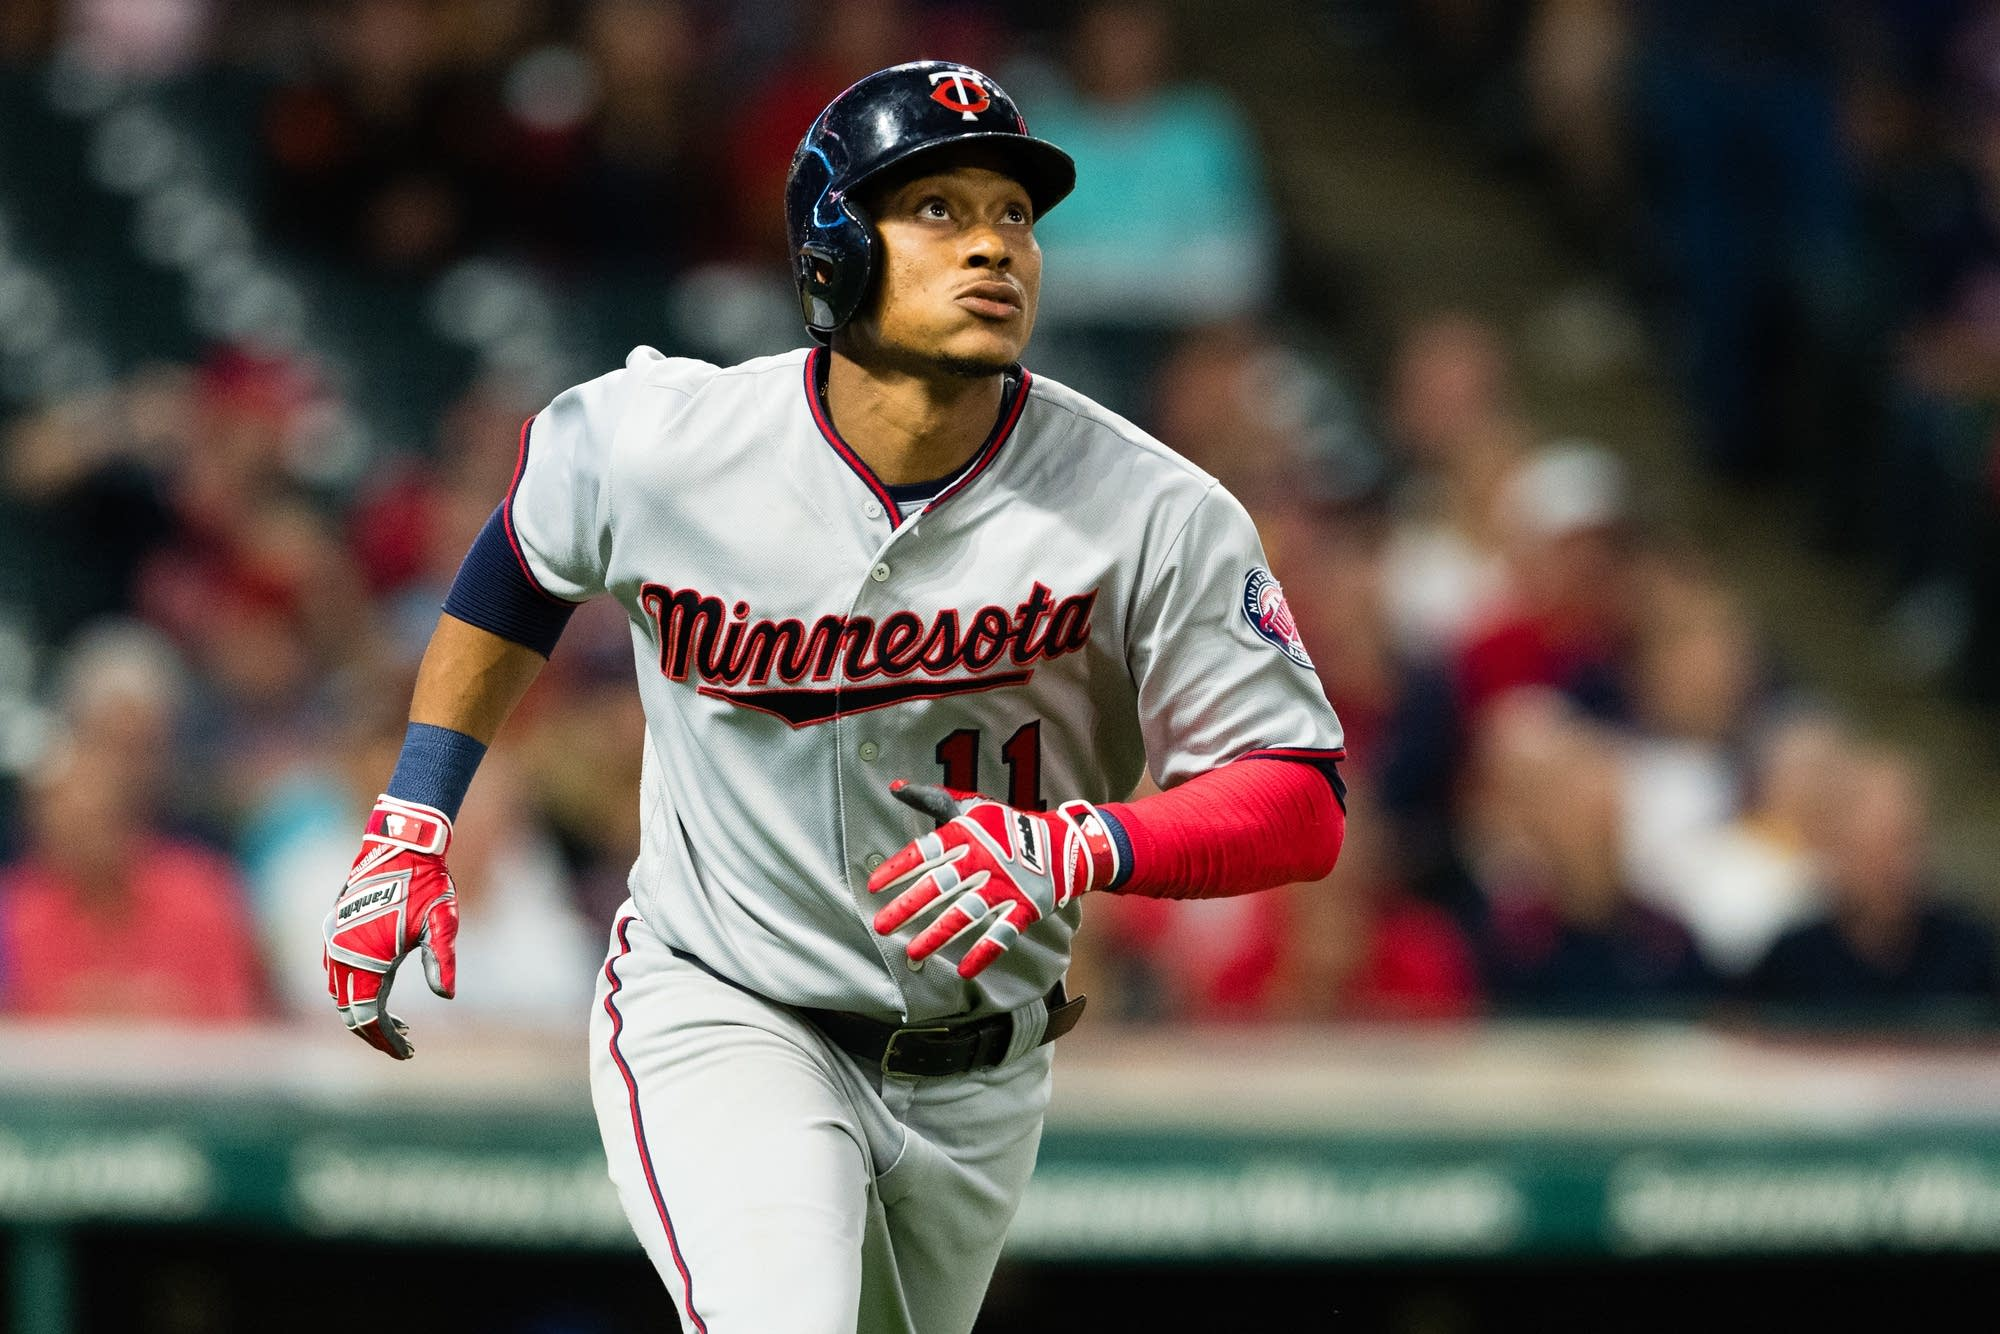 Twins SS Polanco suspended 80 games for PED use